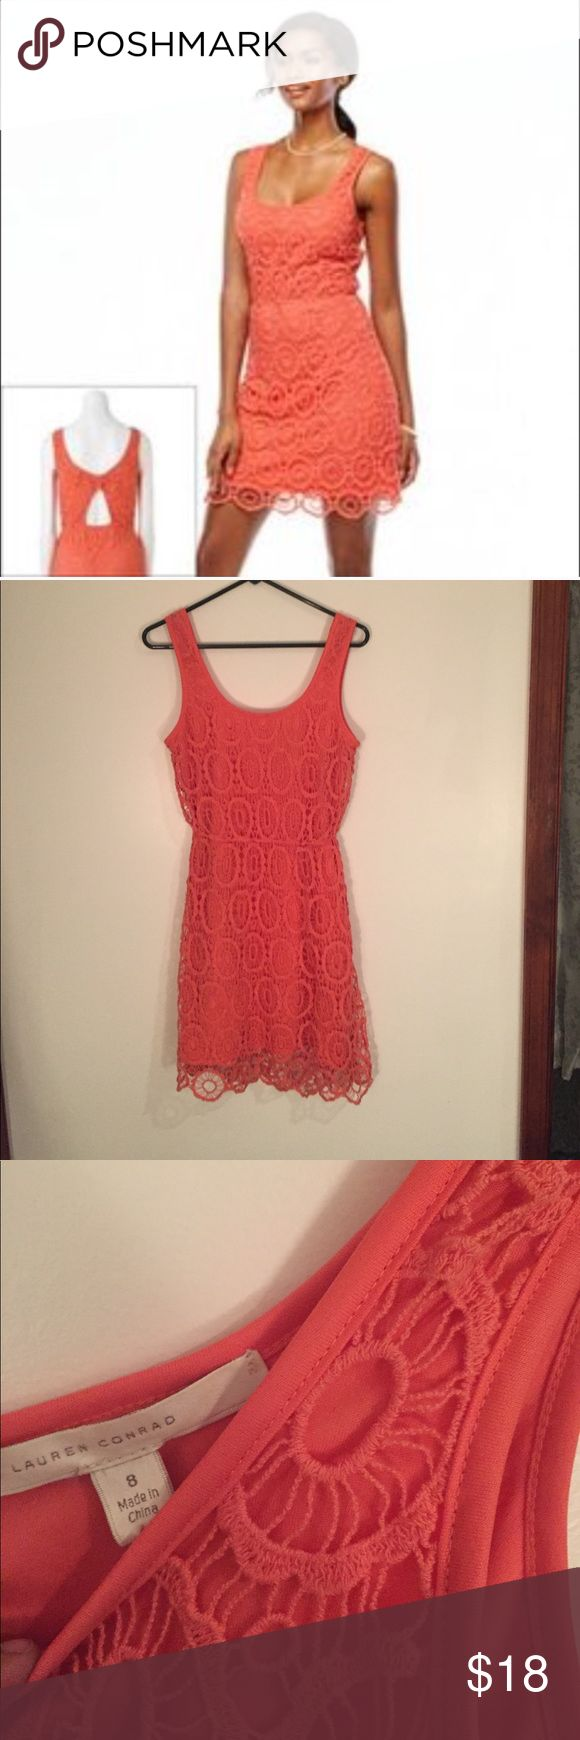 1 day sale! LC Lauren Conrad crochet lace dress 🌞 EUC LC Lauren Conrad orange lace crochet floral dress with bow cut out back, the scallop hemline is so cute! 🌞 LC Lauren Conrad Dresses